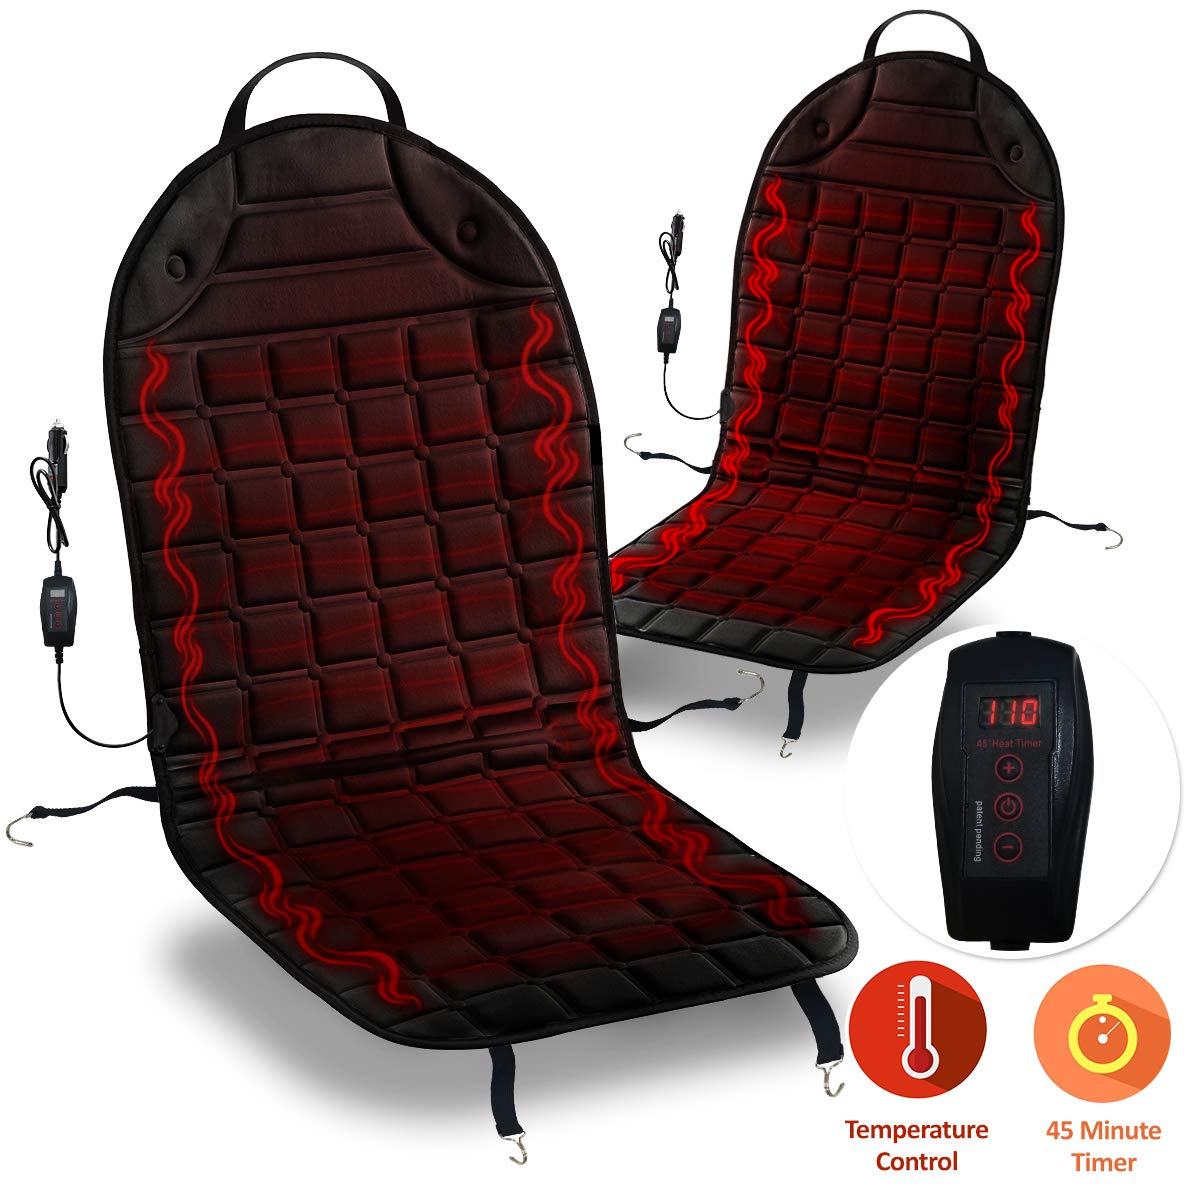 Zone Tech Car Heated Seat Cover Cushion Hot Warmer Premium Quality 2 pack 12V Fireproof Heating Warmer Pad Cover Perfect for Cold Weather and Winter Driving